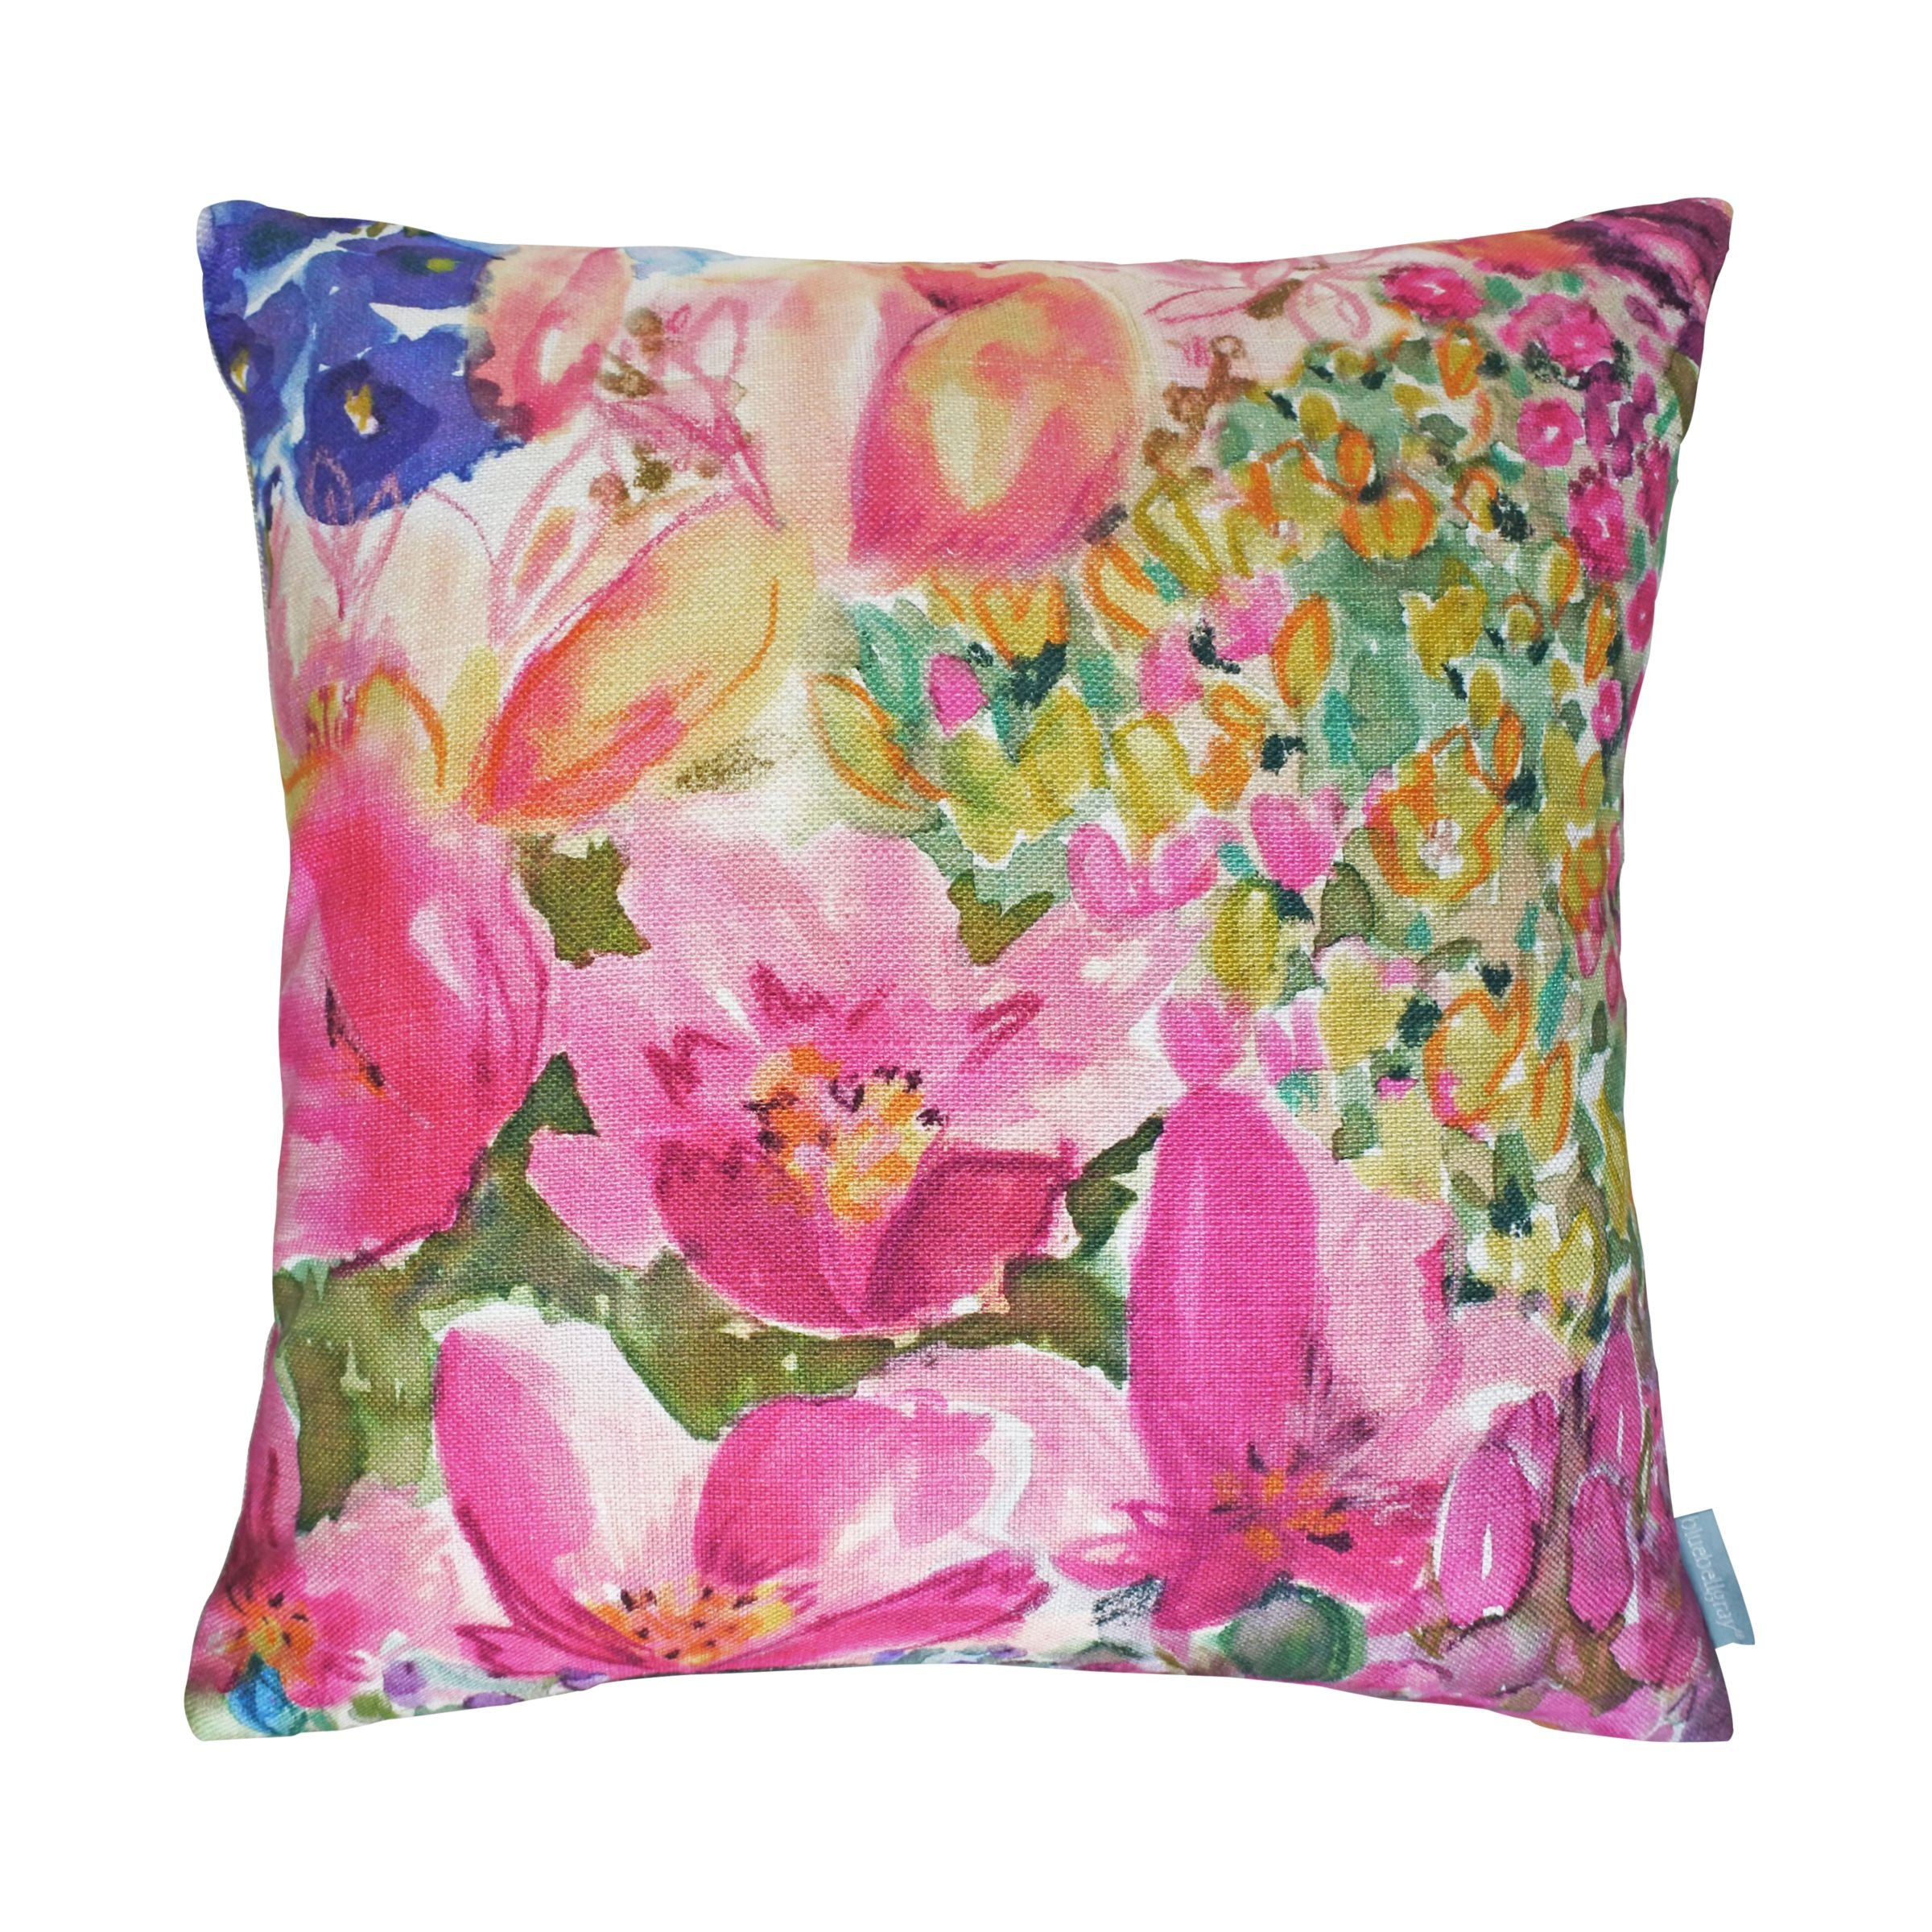 bluebellgray bluebellgray Juliette Cushion, Multi